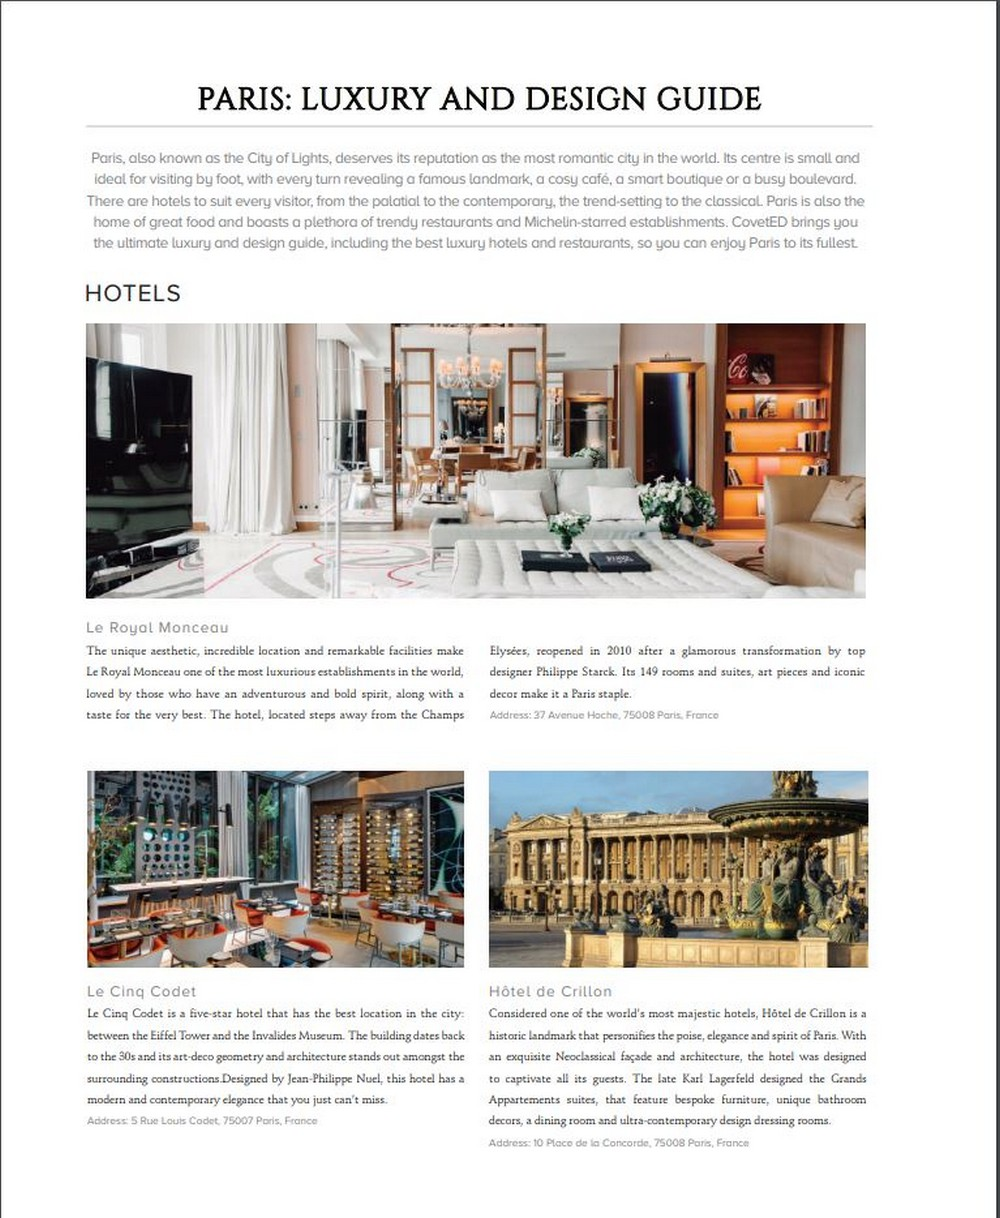 Maison et Objet 2020 - Here Is Why You Should By CovetED's 16th Issue! maison et objet Maison et Objet 2020 – Here Is Why You Should By CovetED's 16th Issue! Maison et Objet 2020 Here Is Why You Should By CovetEDs 16th Issue 4